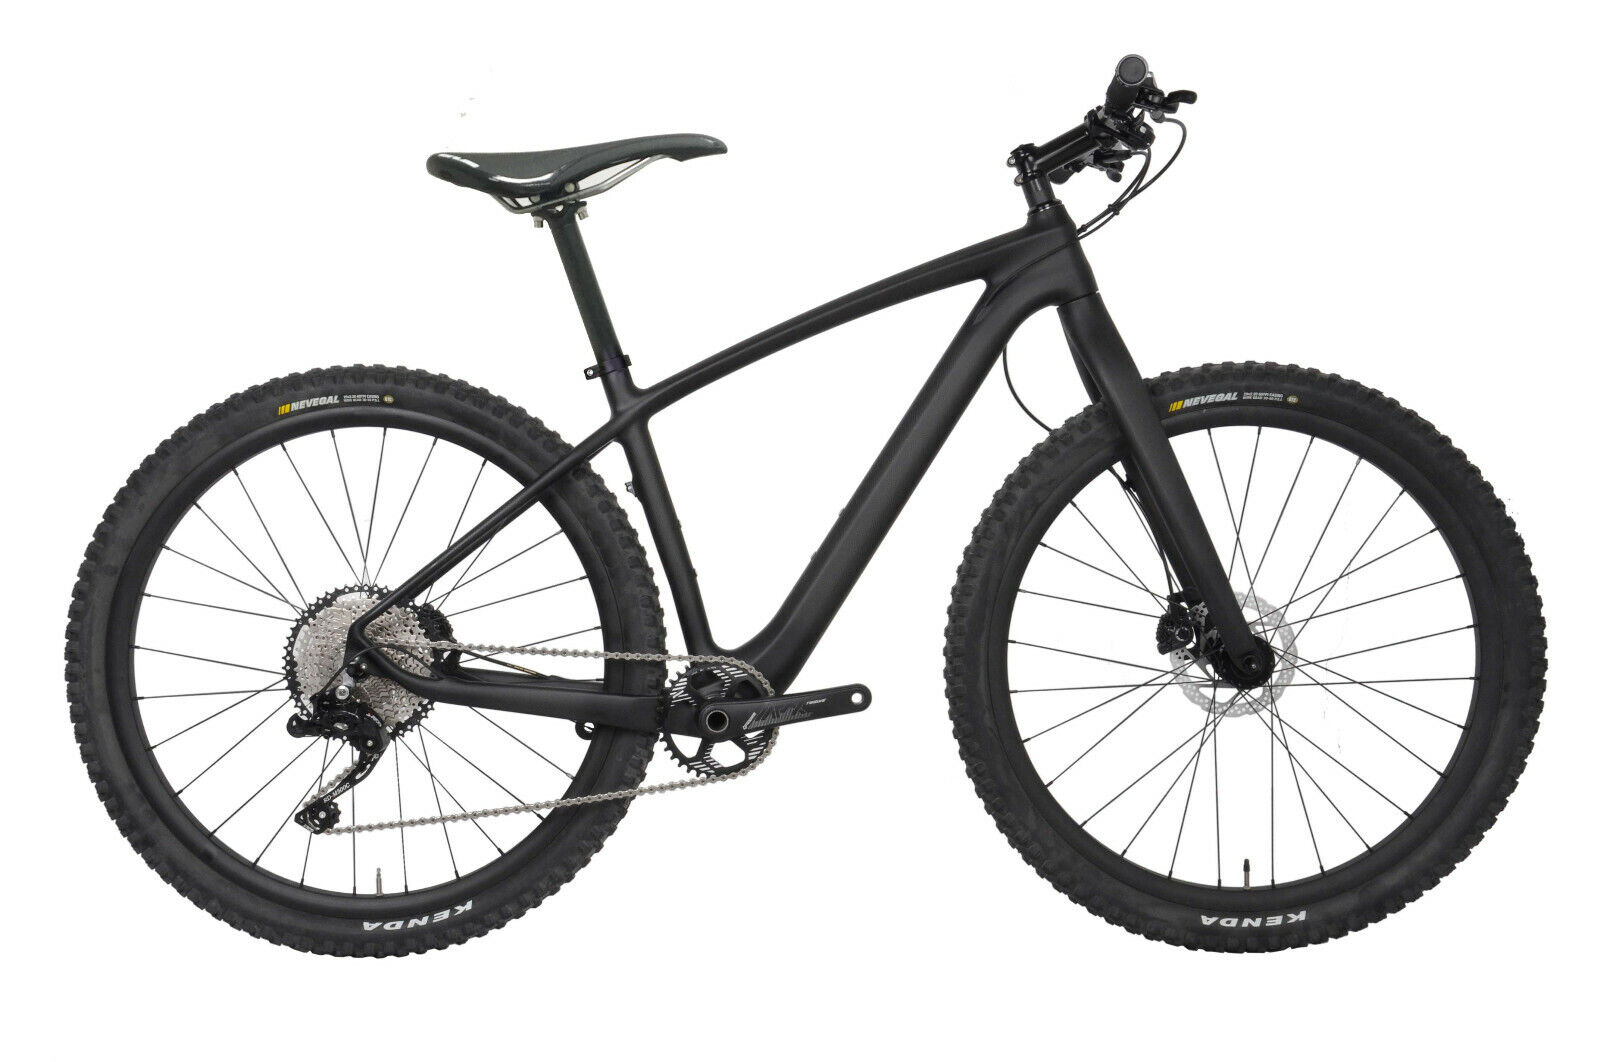 NEW 29er Carbon Bike MTB Complete Mountain Bicycle Wheels 12s Fork Hardtail 17.5